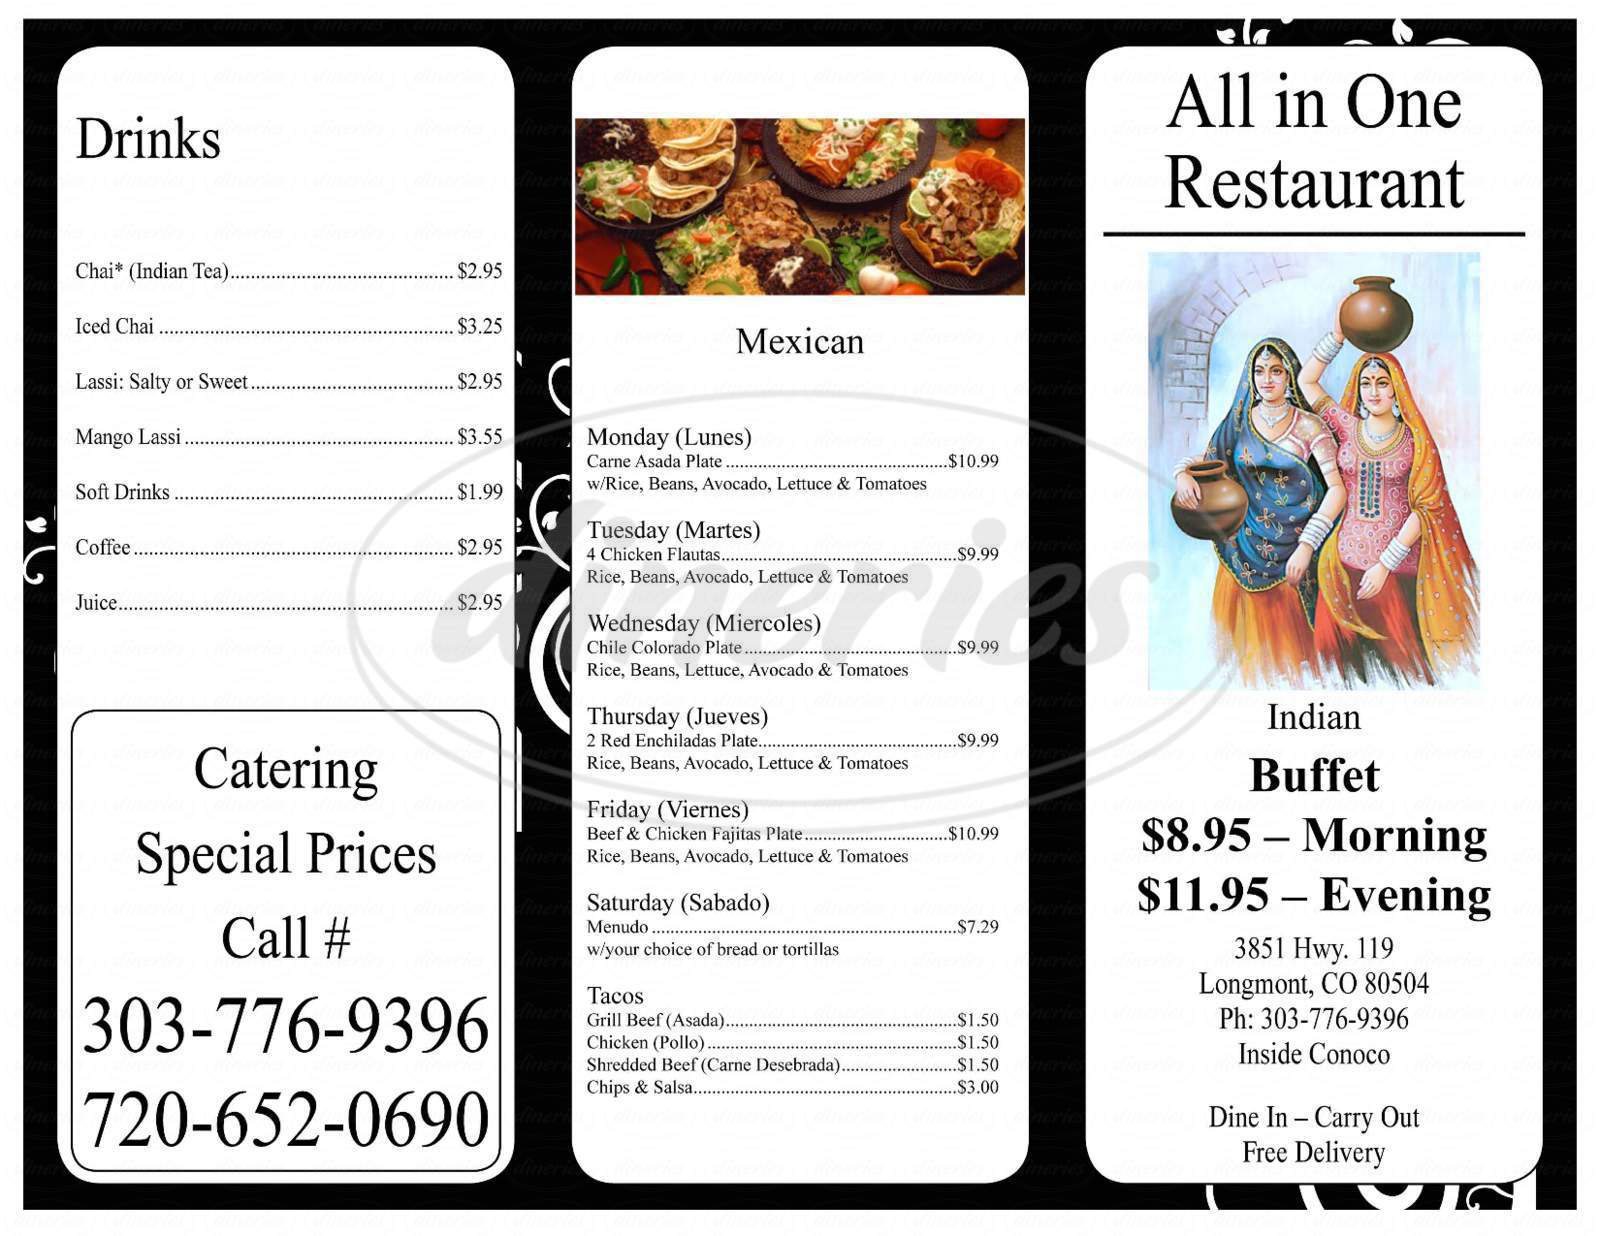 menu for All in one Restaurant